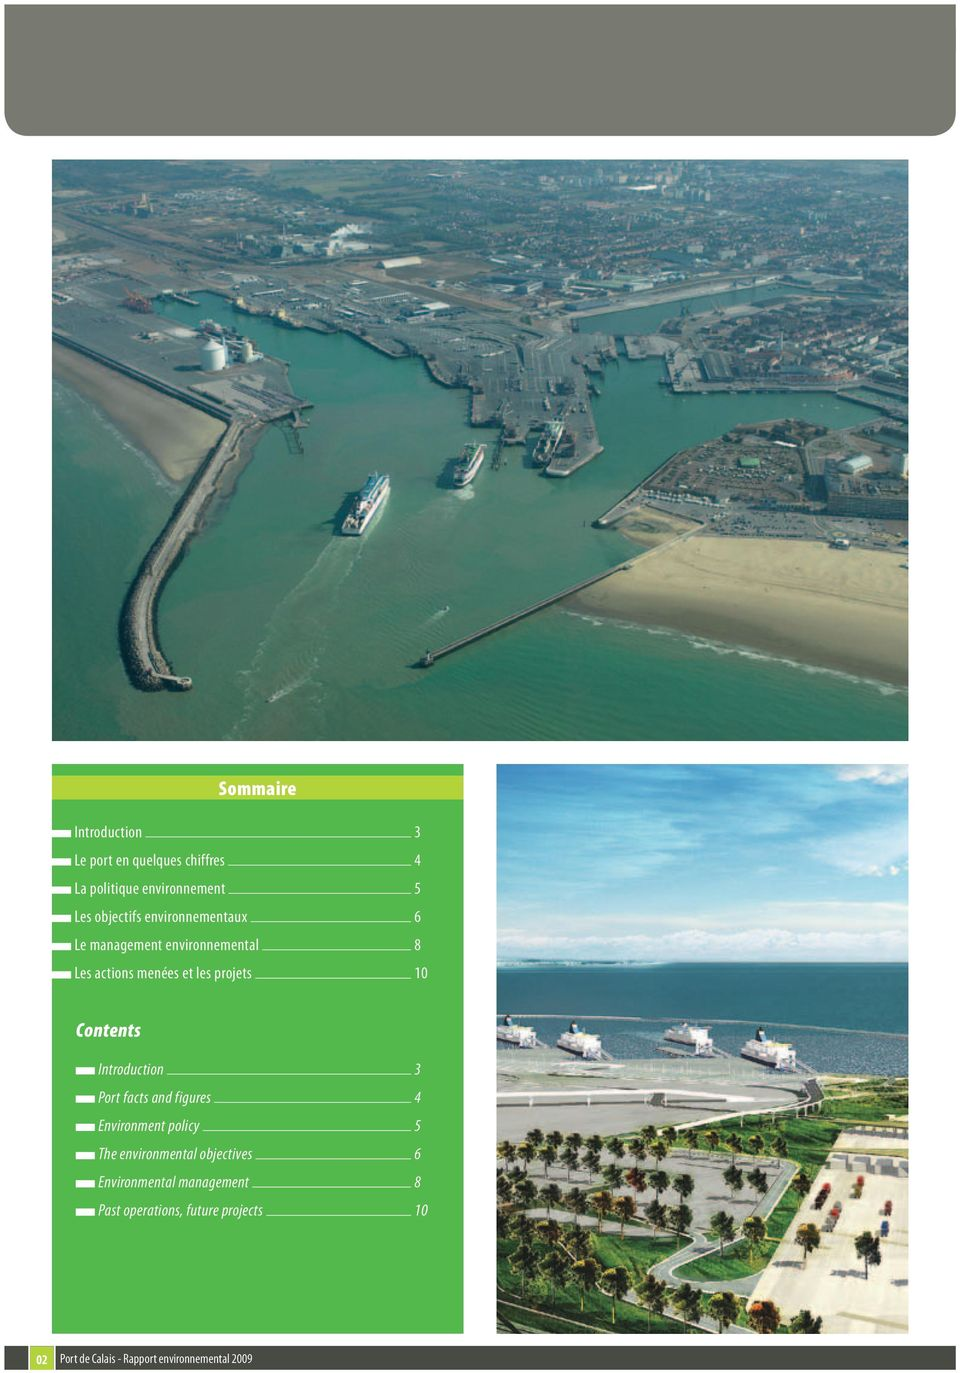 Introduction 3 Port facts and figures 4 Environment policy 5 The environmental objectives 6